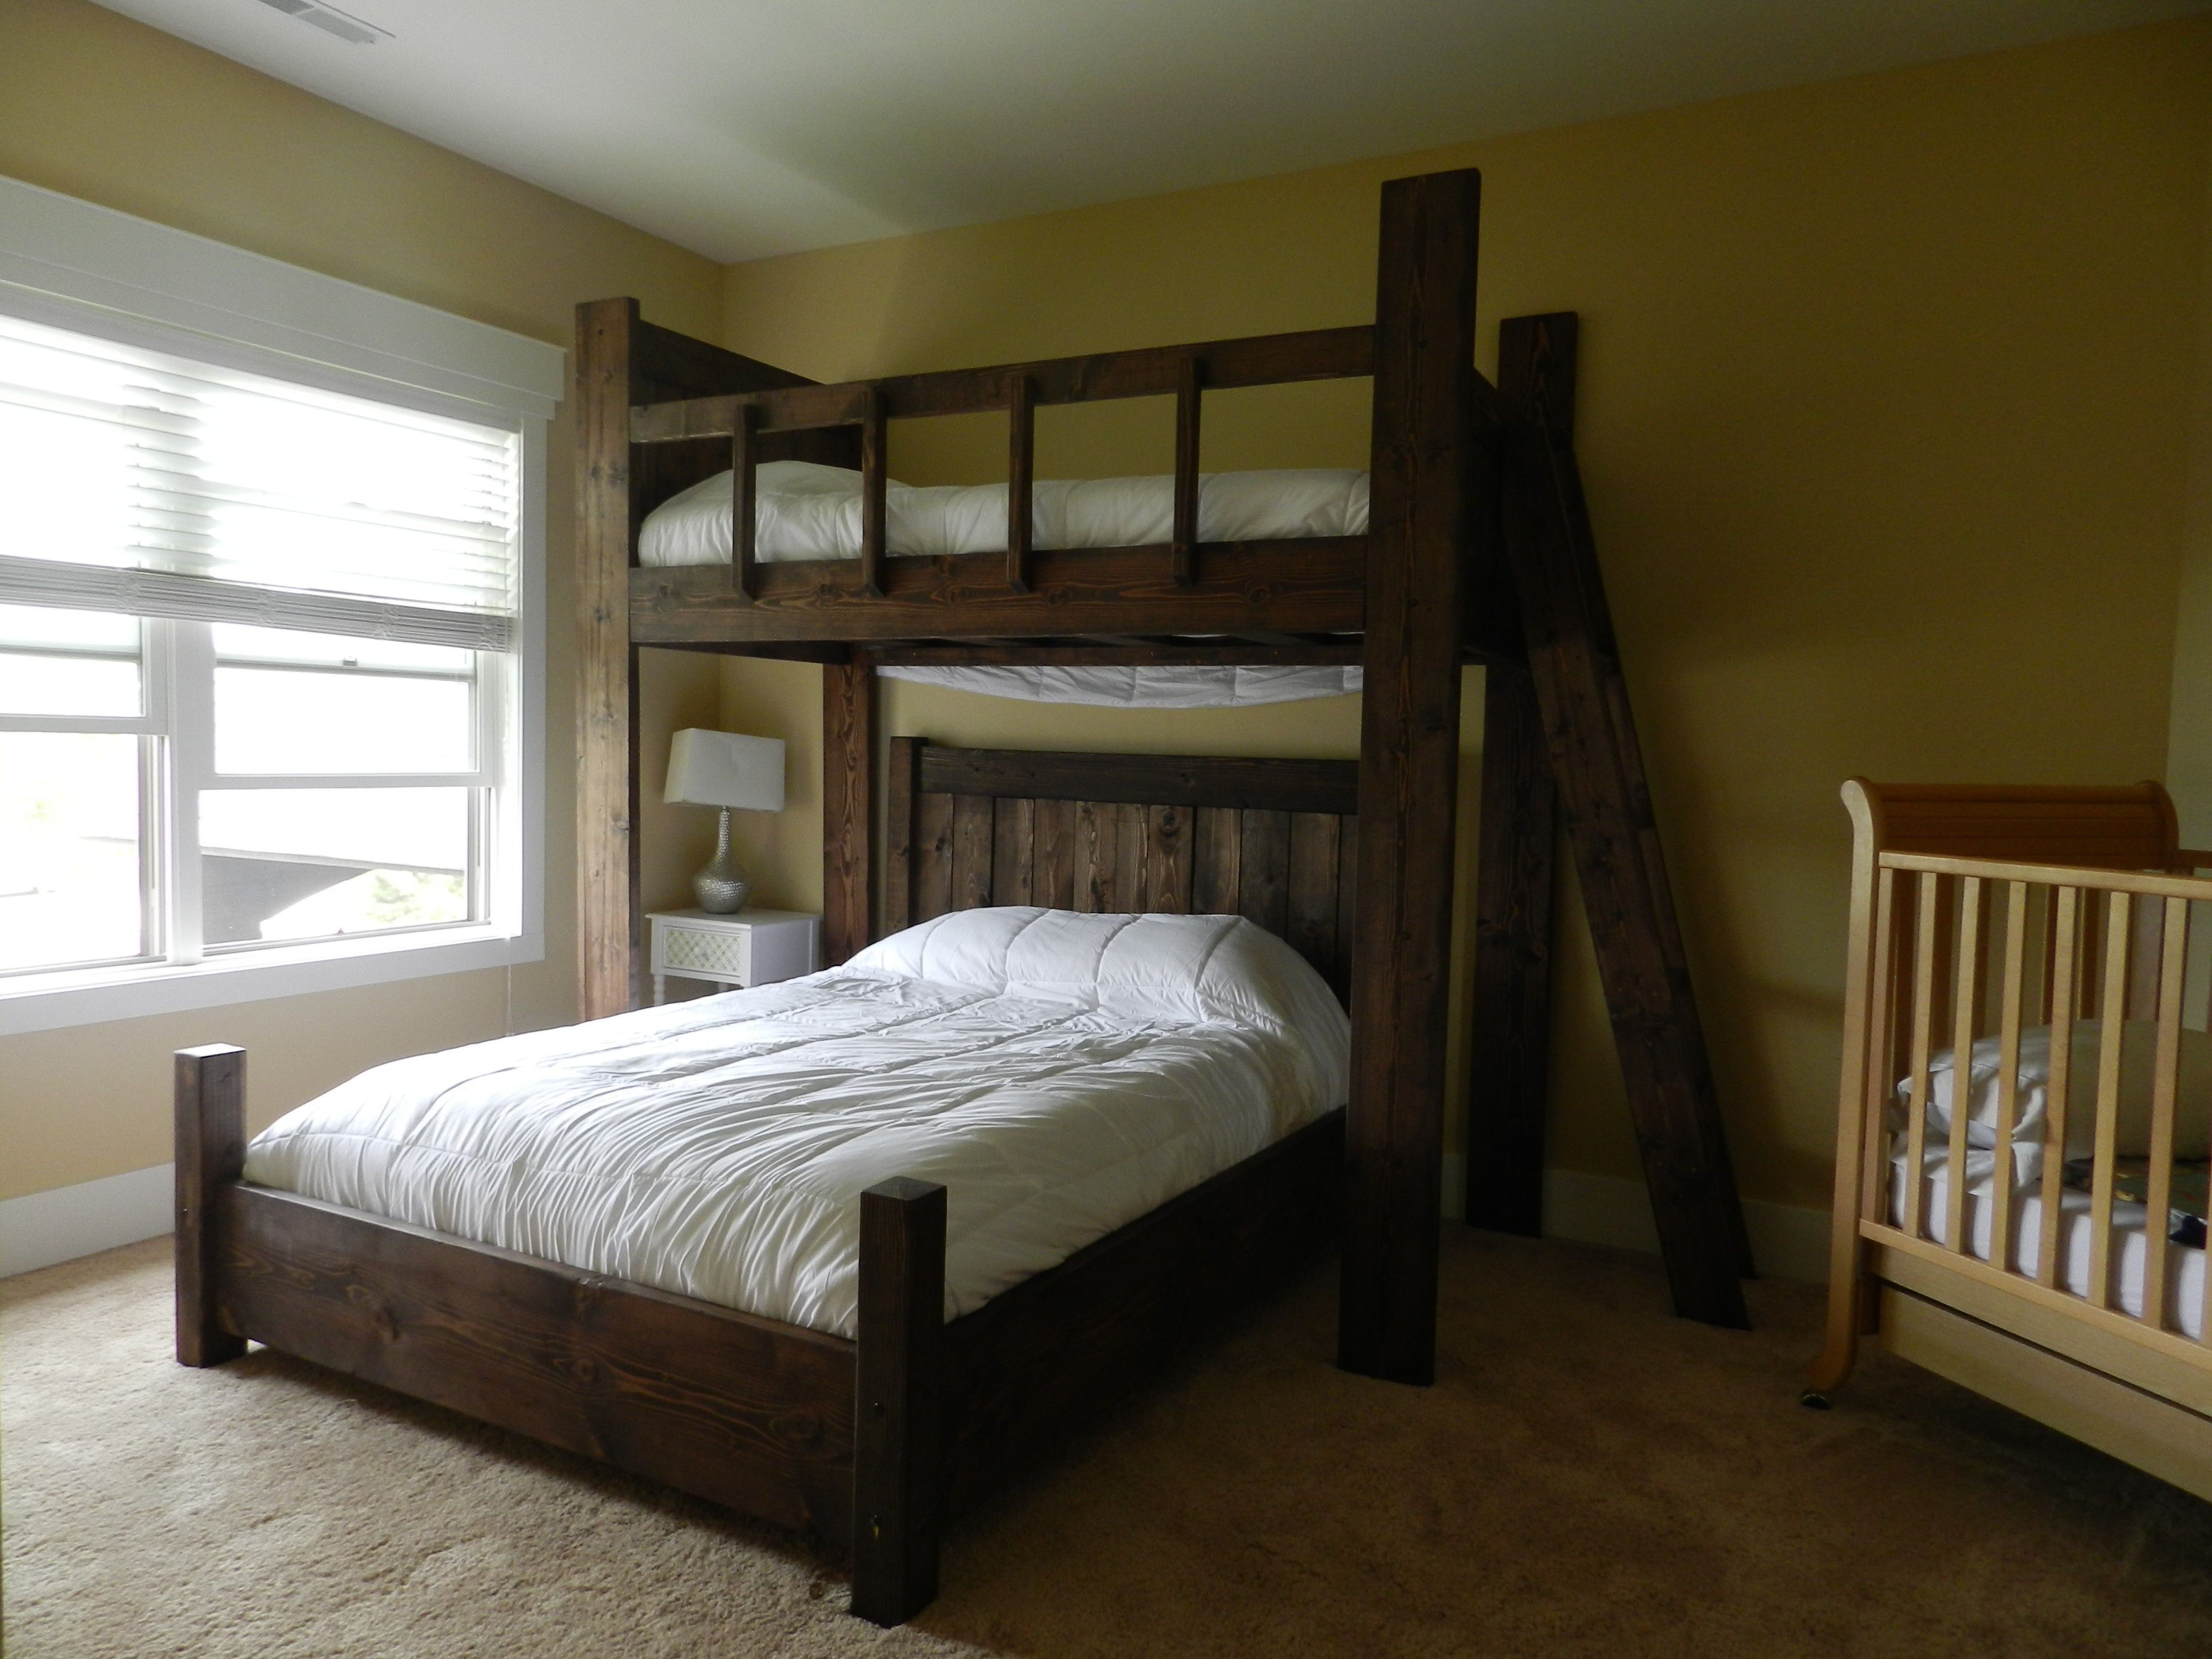 Susquehanna Bunk Bed twin over queen Custom bunk beds